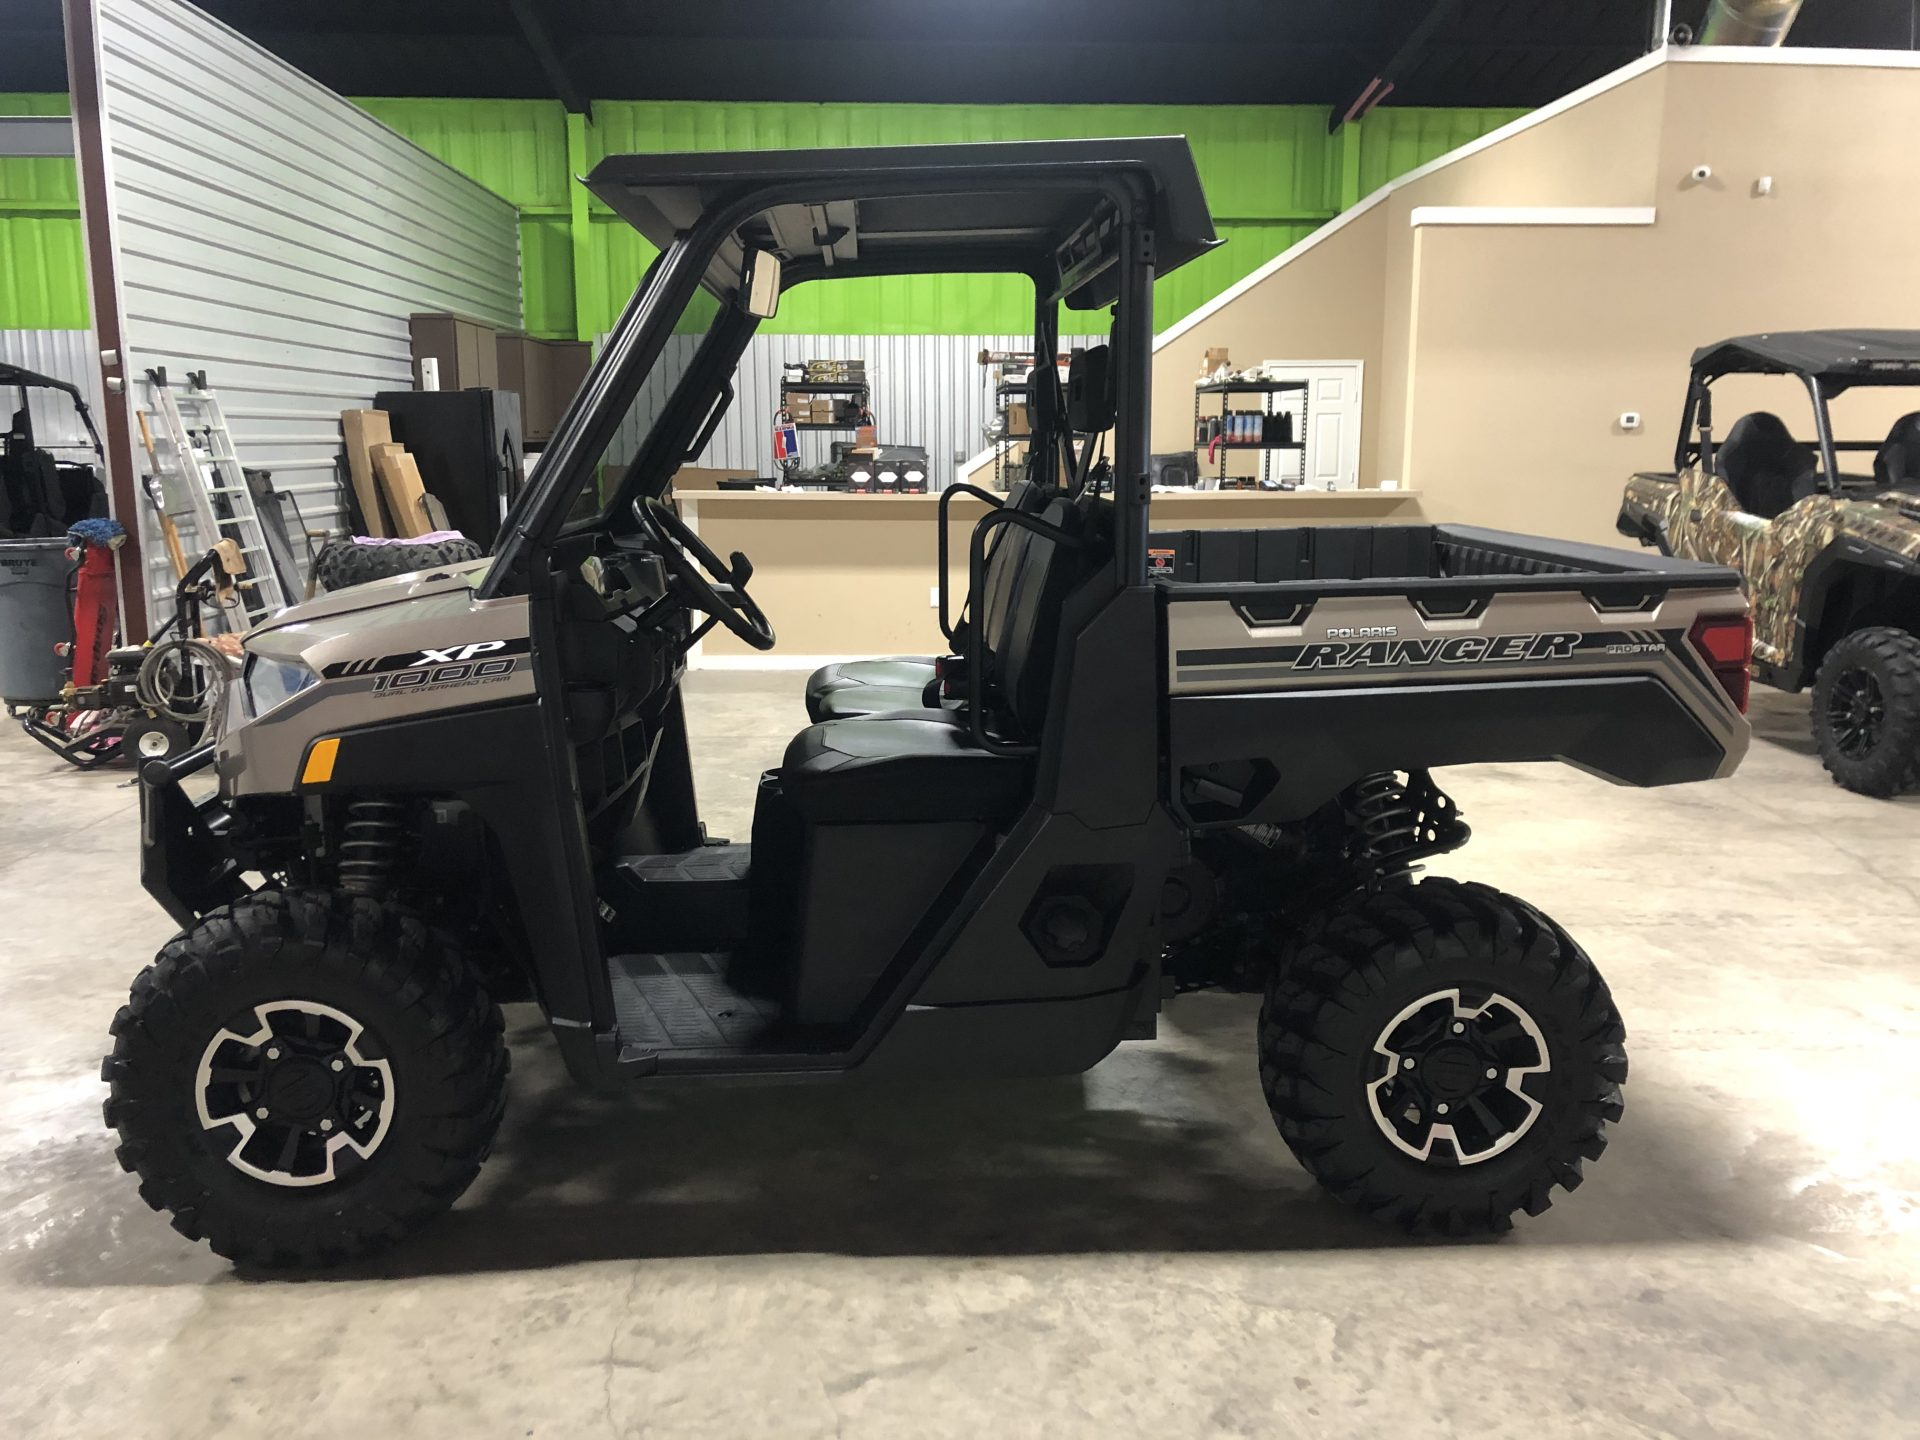 2018 Polaris Ranger 1000 XP Image